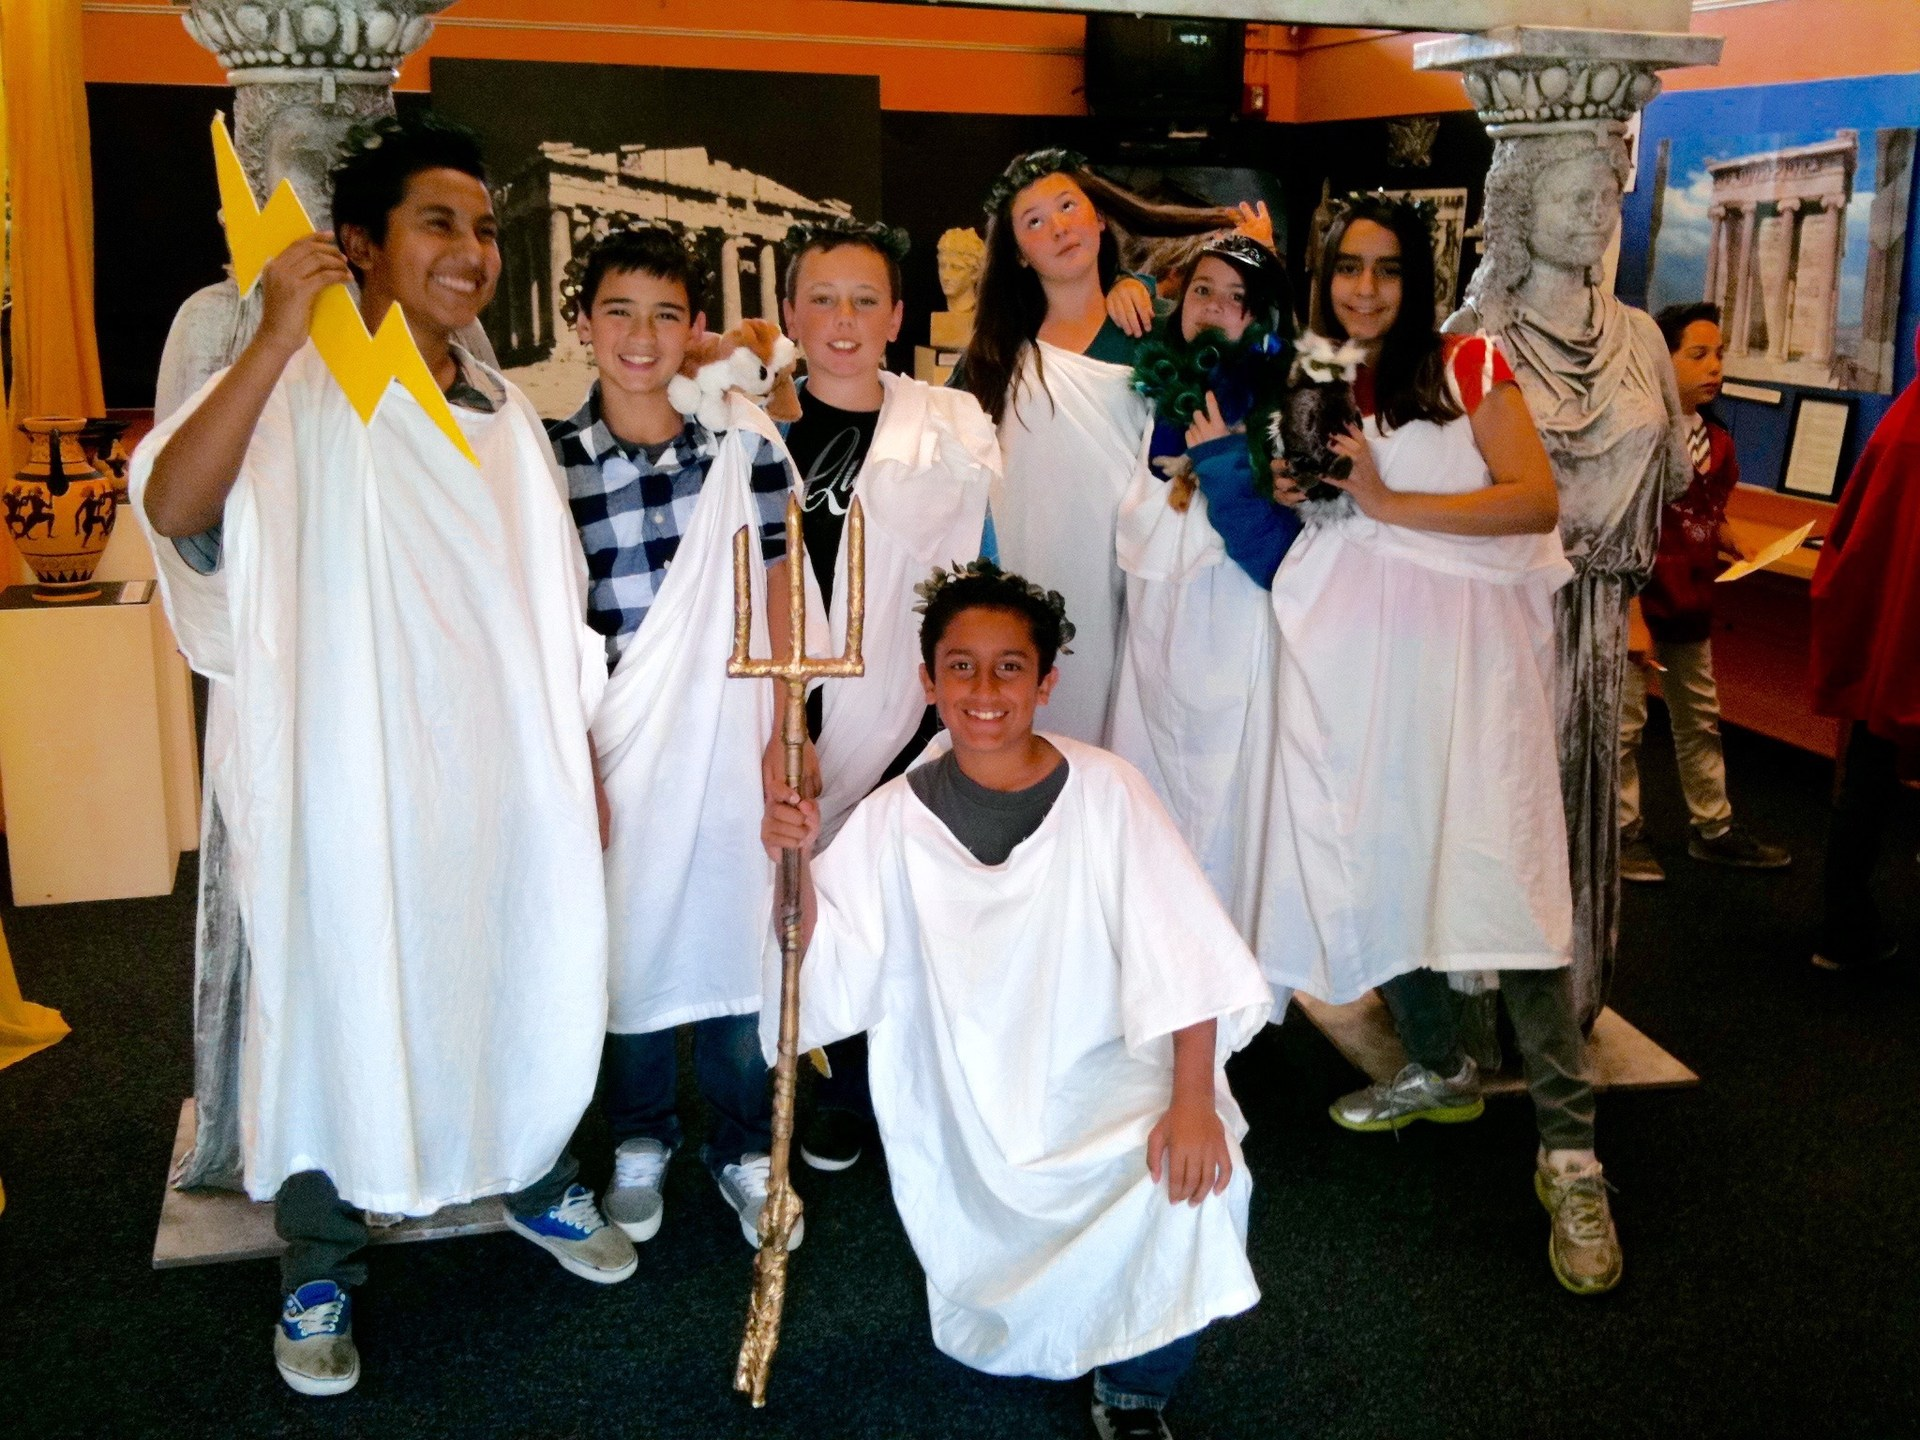 Students dressed as Greek Gods in the Creativity Center.